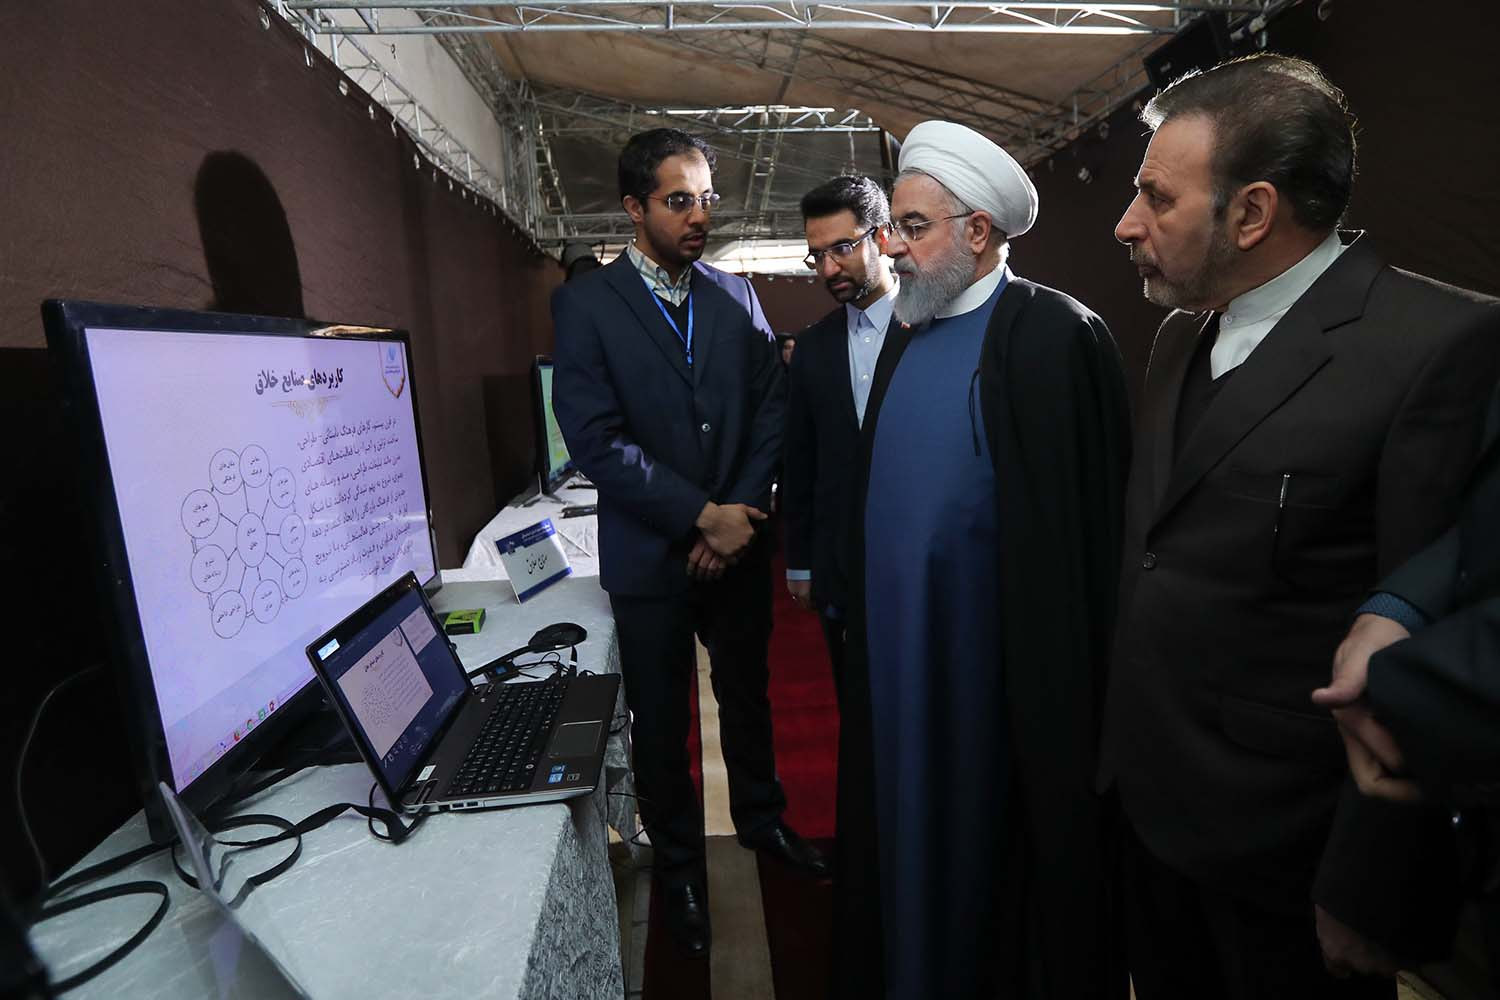 Iranian President Hassan Rouhani meets with Jahromi in Tehran during a visit to the exhibition area at the Ministry of Information and Communication on Jan. 21.